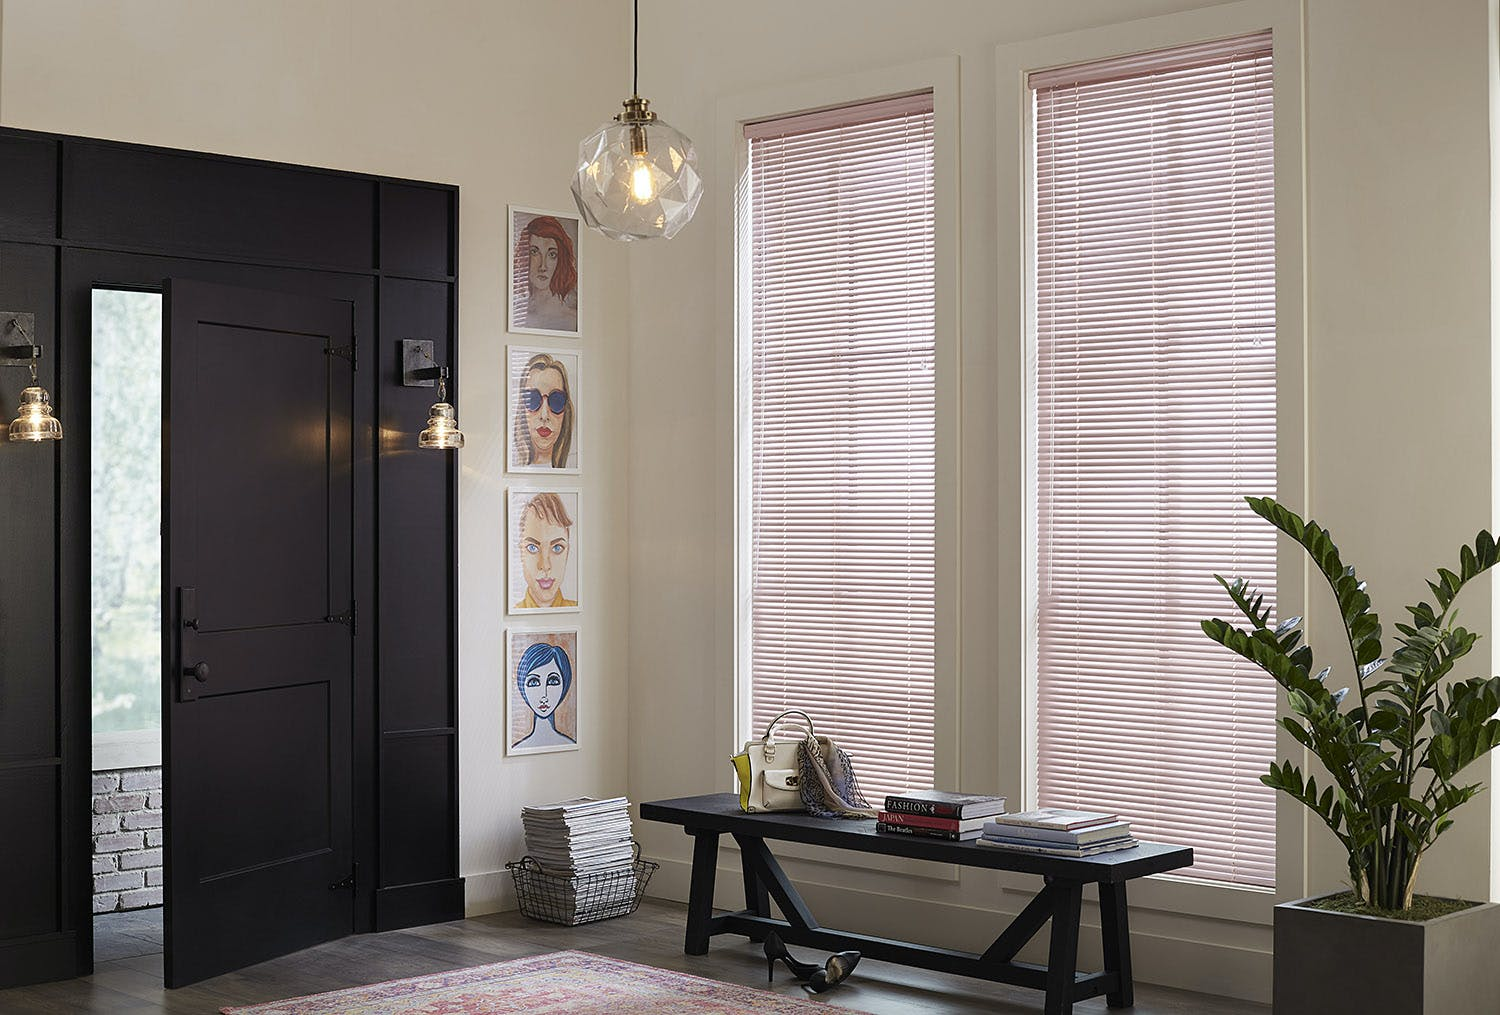 Pastel pink aluminum mini blinds in a modern entry way.